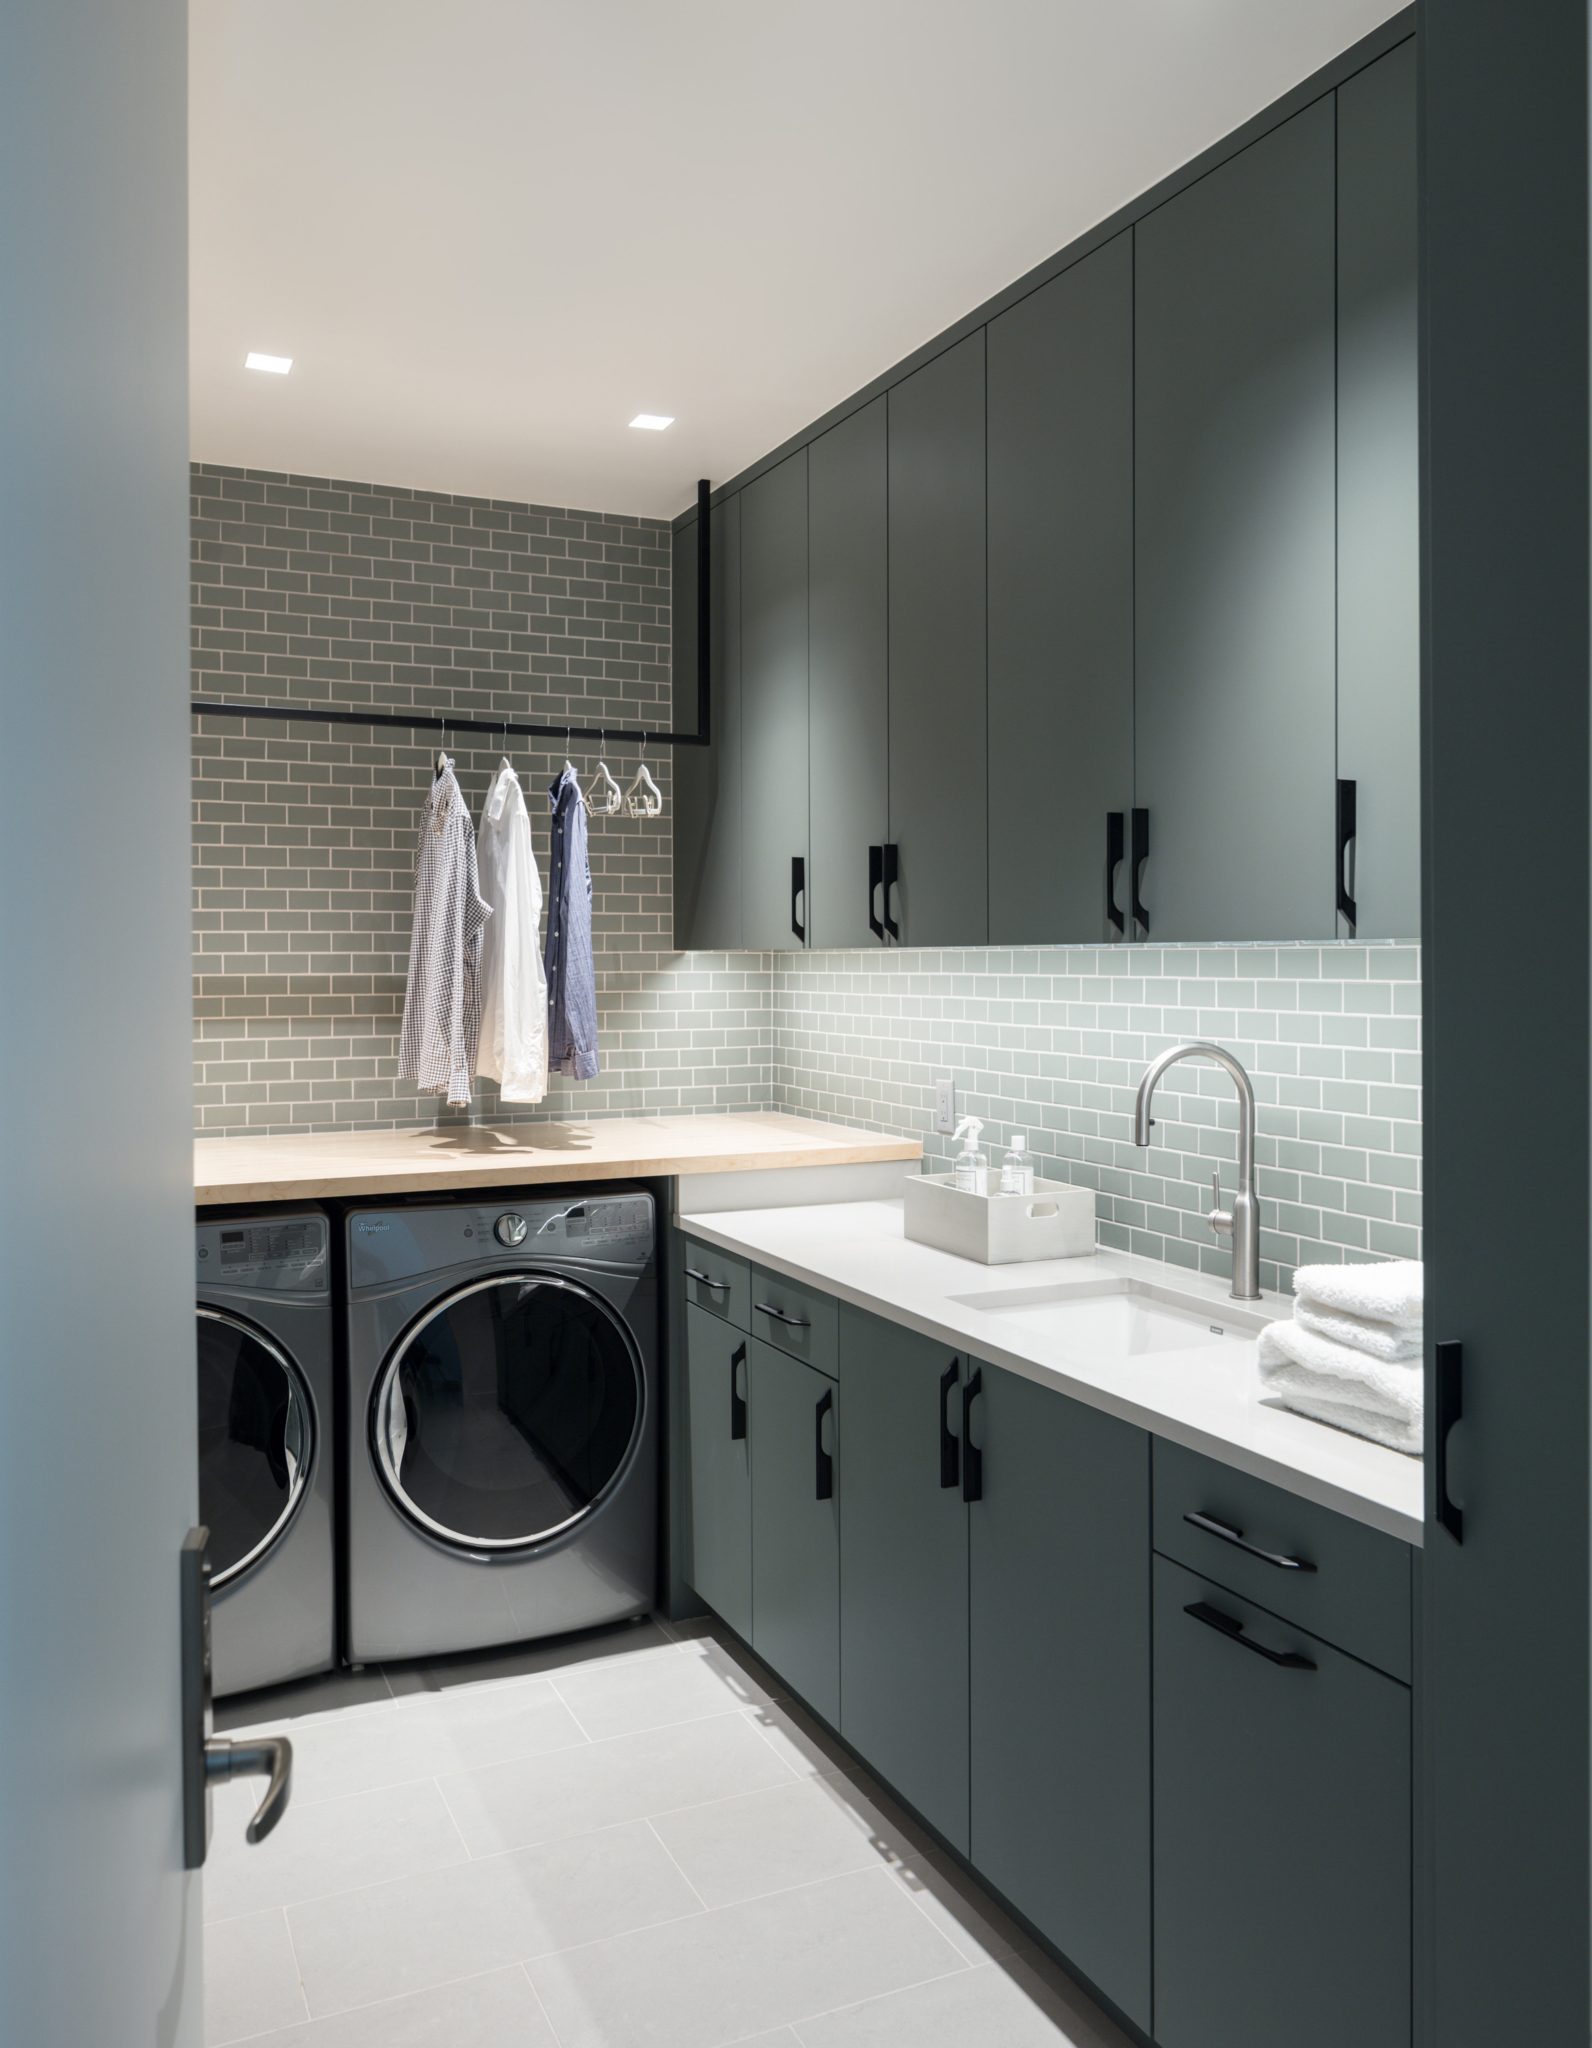 A Modern Homestead in Colorado, Laundry Room by Duet Design Group